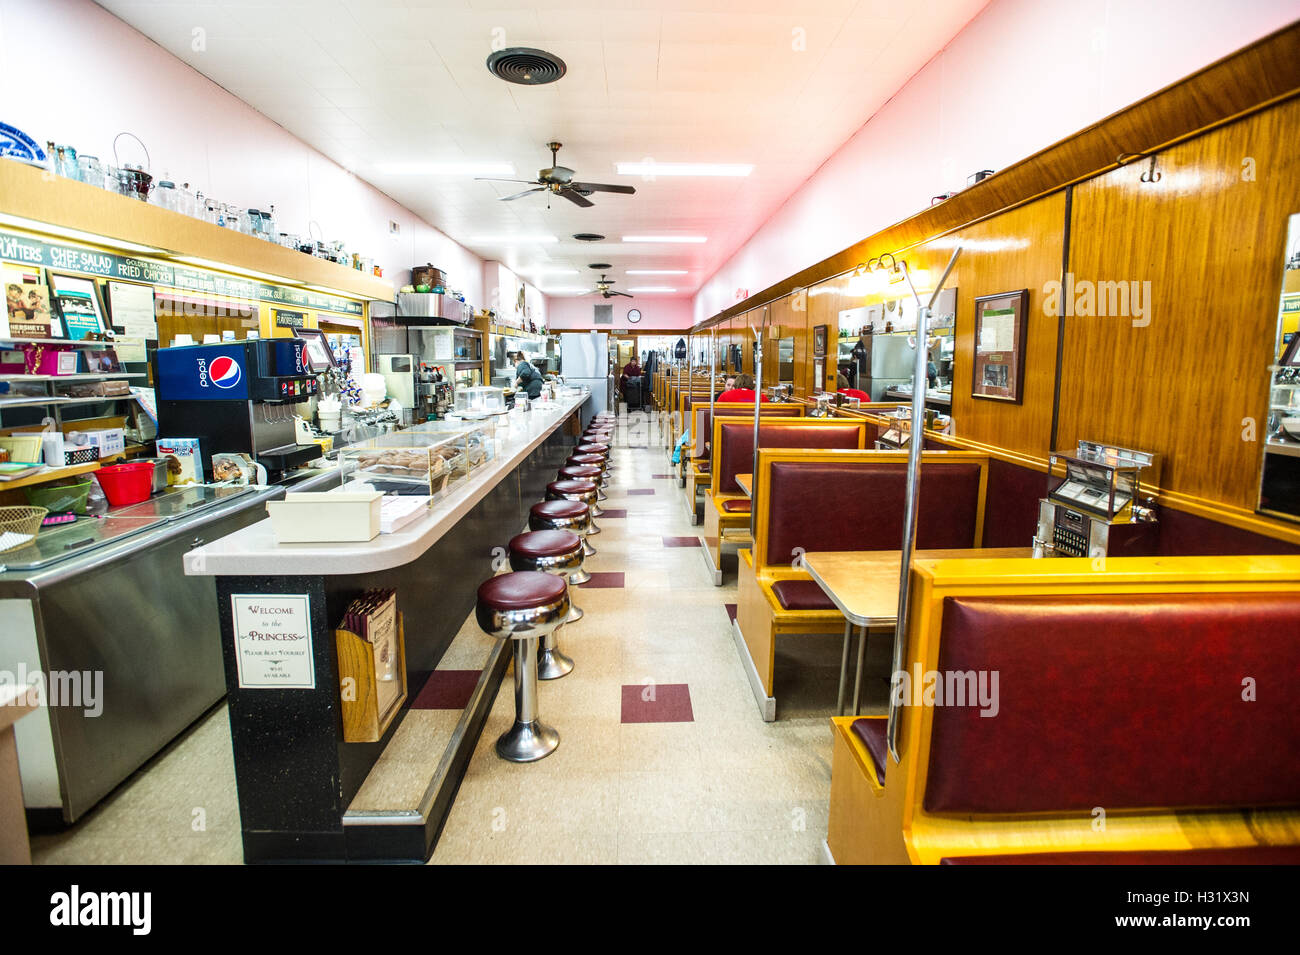 Bar and booths at a diner in Maryland - Stock Image